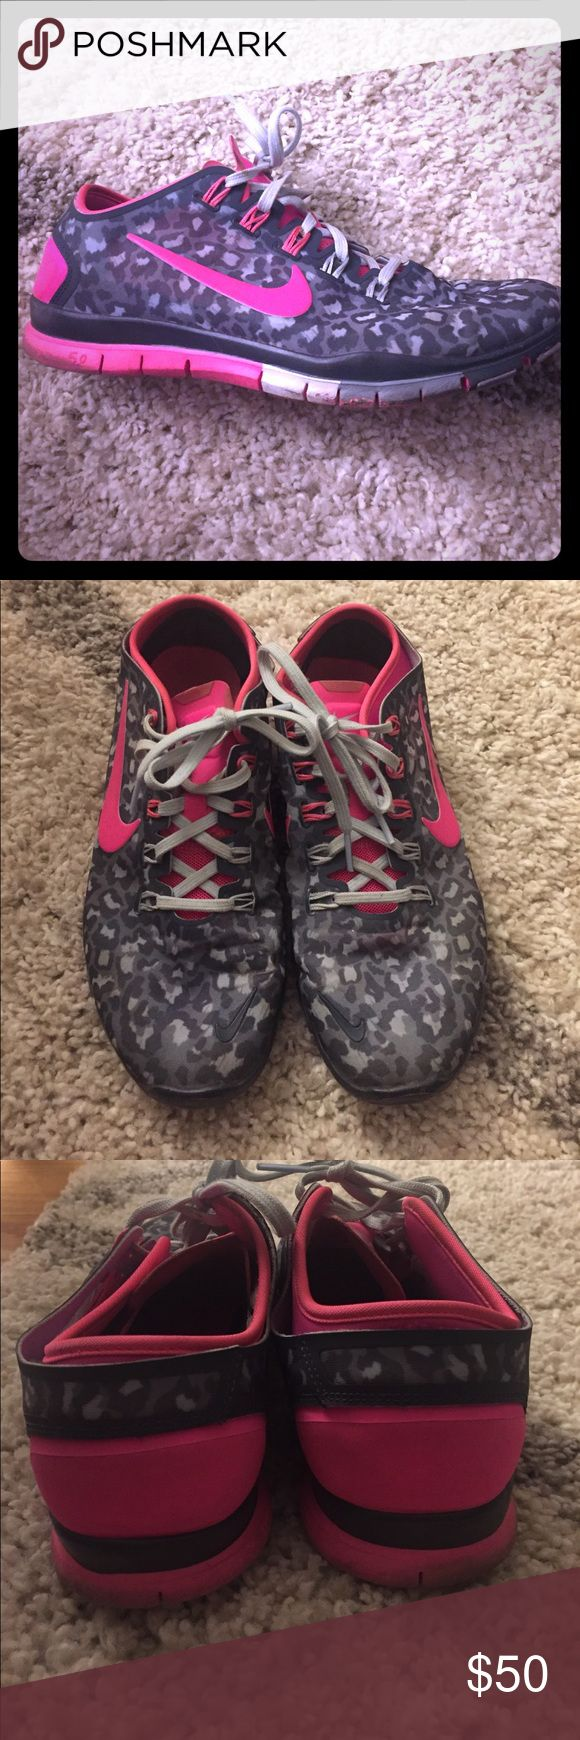 Nike Free TR Connect 2- Cheetah print!  RARE. These are in mint condition and were hardly worn! Hot pink with dark gray cheetah print! Be the stylish one at the gym  Brand: Nike Size: 9 Nike Shoes Sneakers